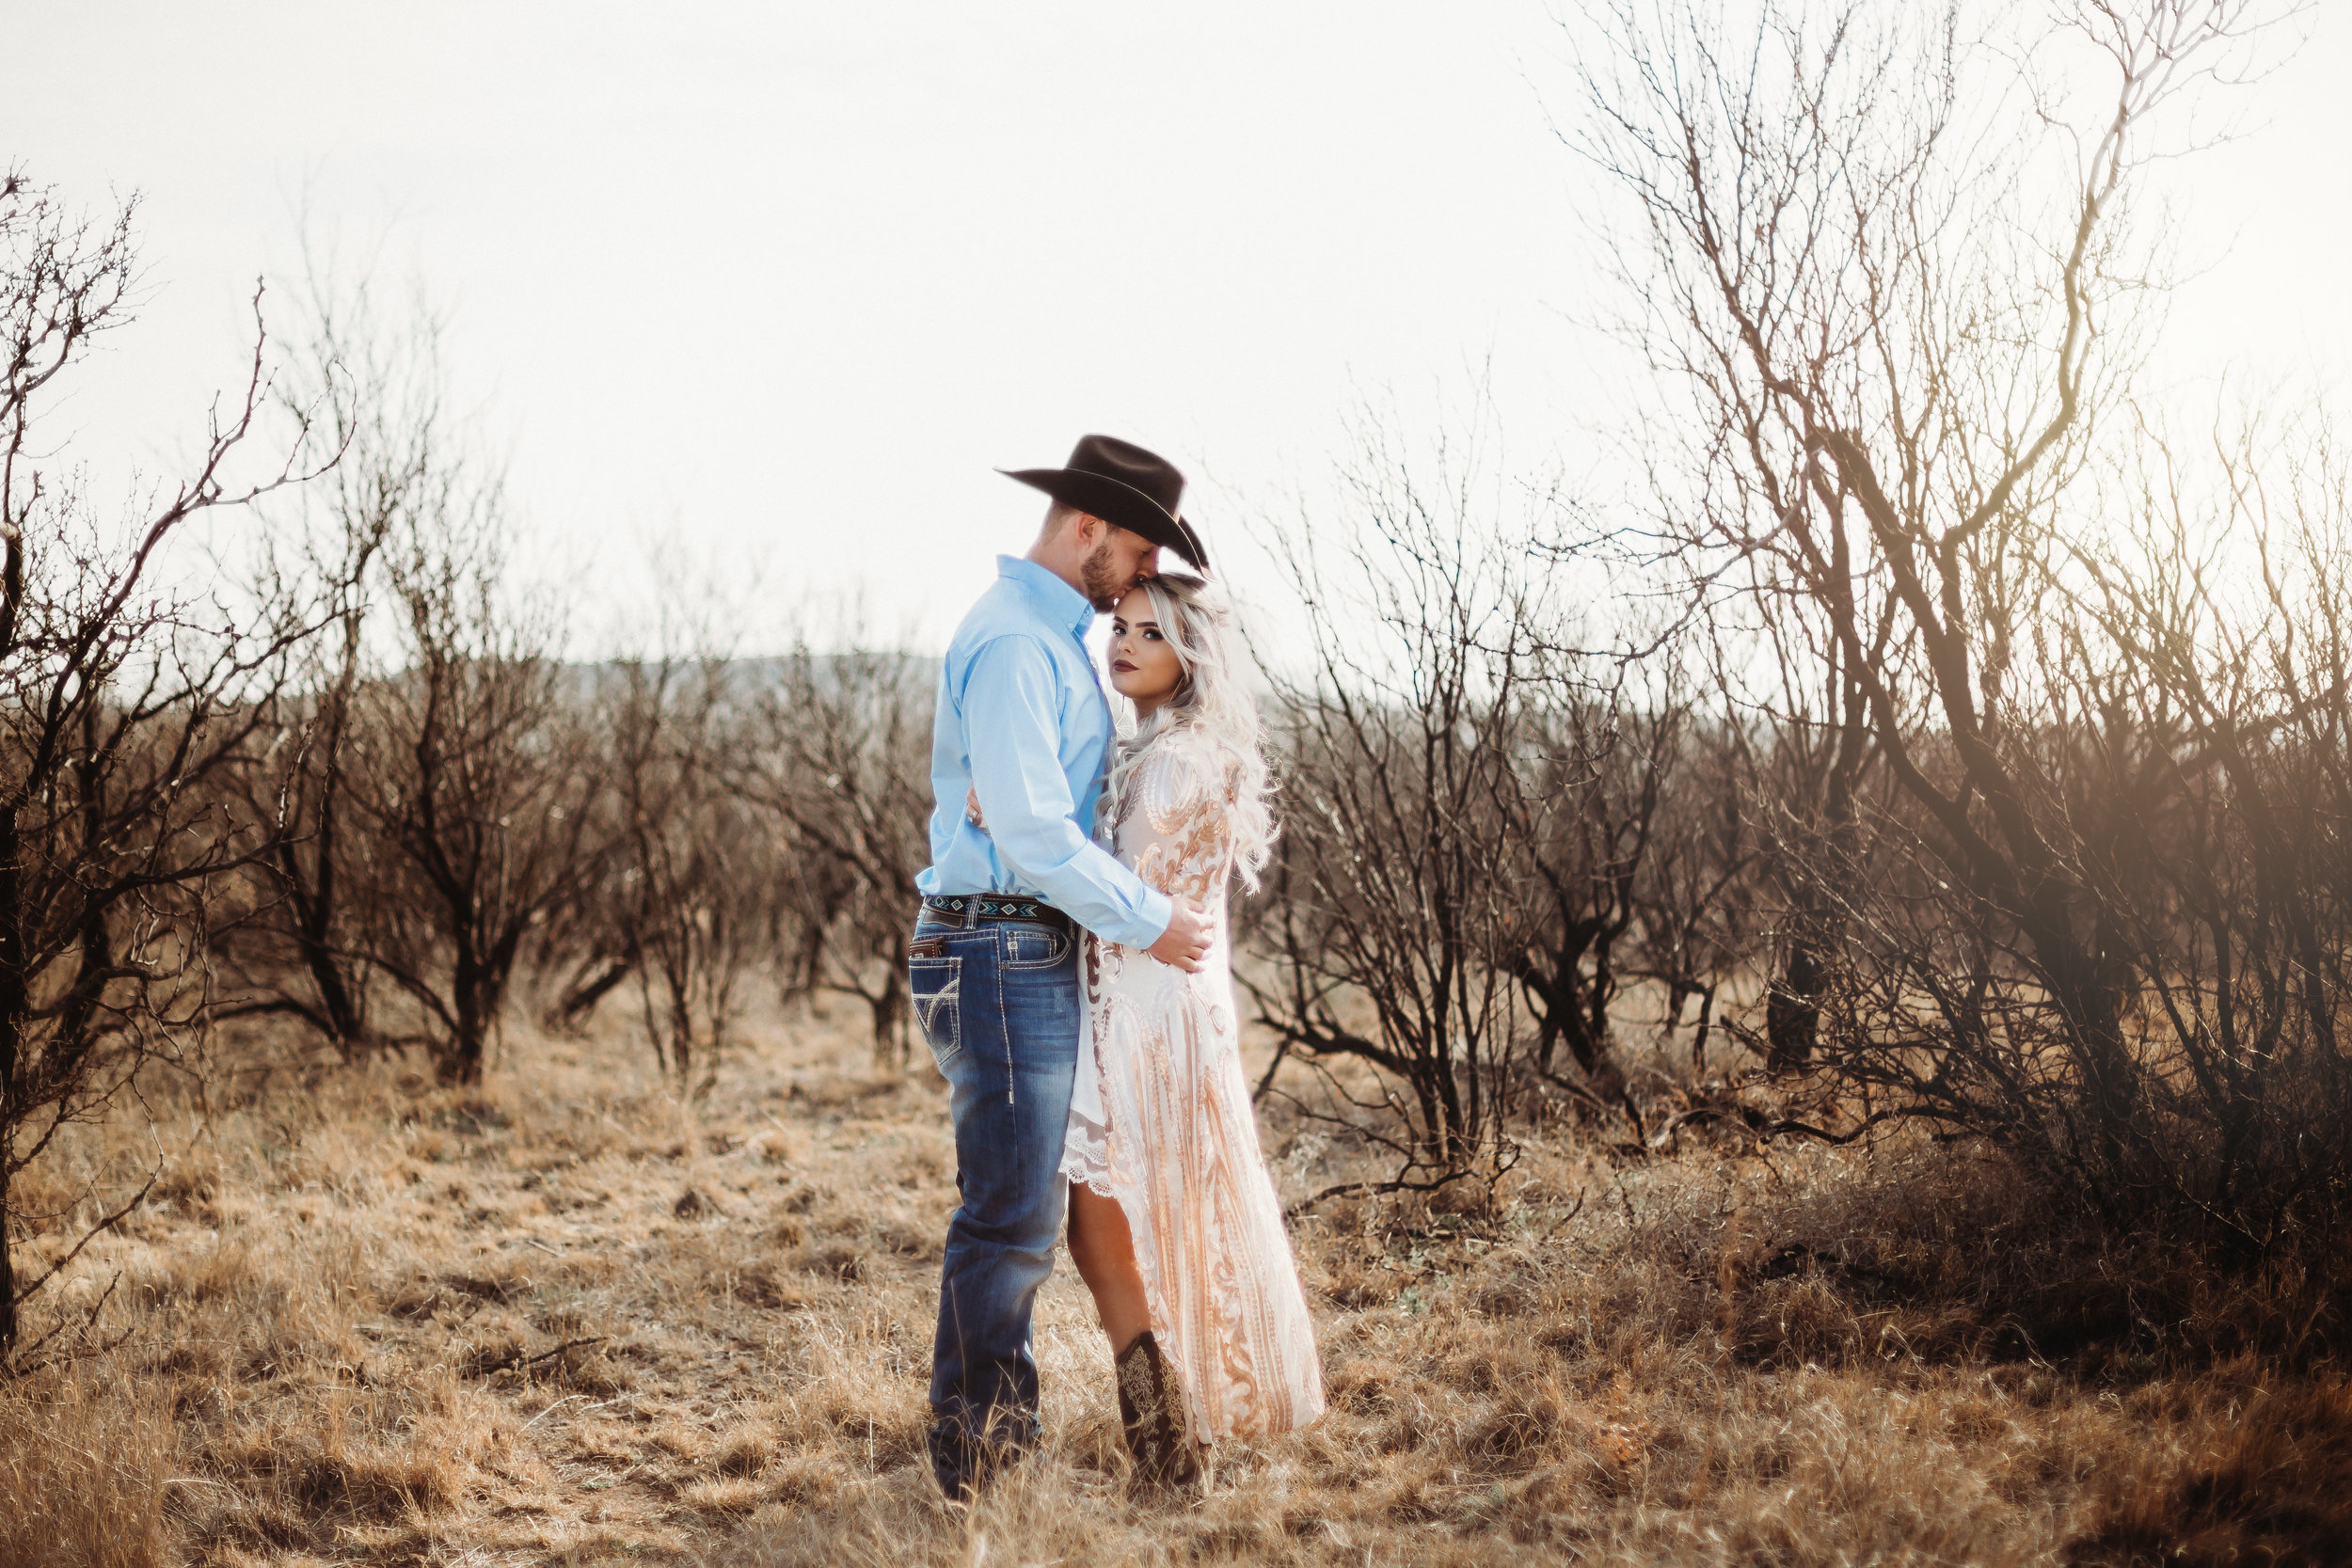 Engaged couple with kiss on the forehead cowboy hat sequins and cowboy boots with neutral background #engagementphotos #engaged #personality #amarillotexas #engagementphotographer #lifestylephotos #amarillophotographer #locationchoice #texasengagementphotos #engagment #tealawardphotography #westernstyle